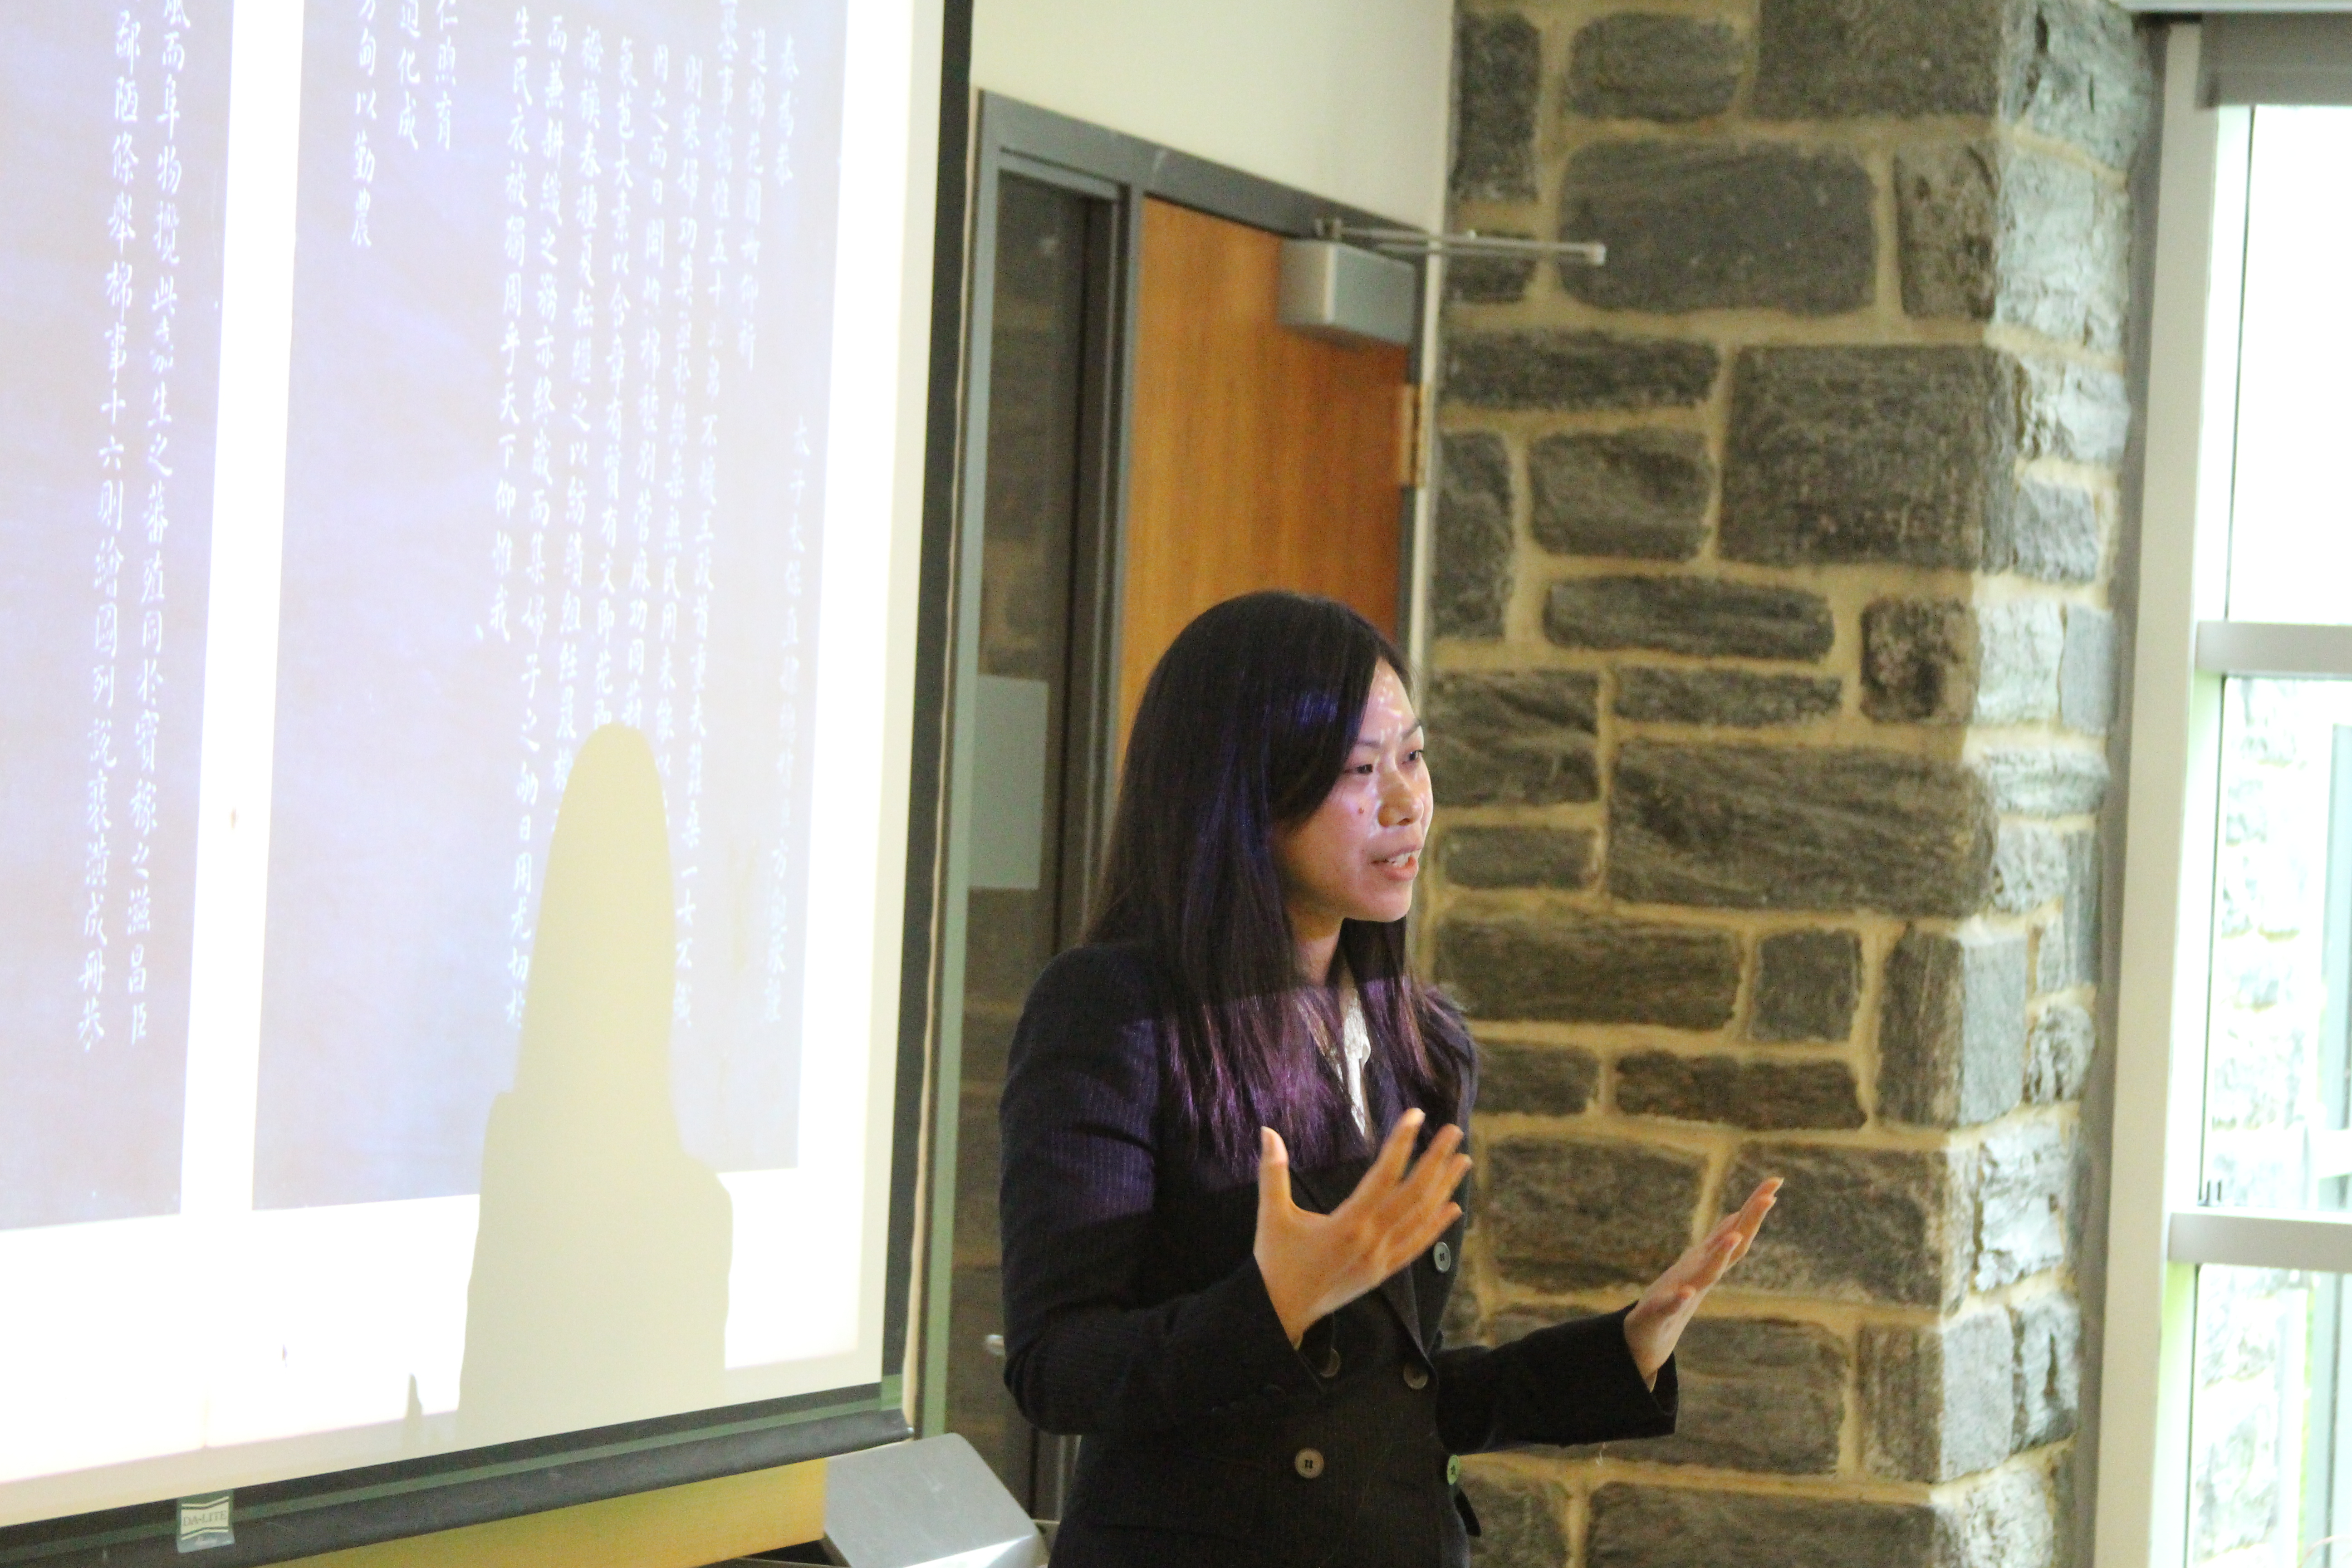 Professor Chen presents at the reading workshop.